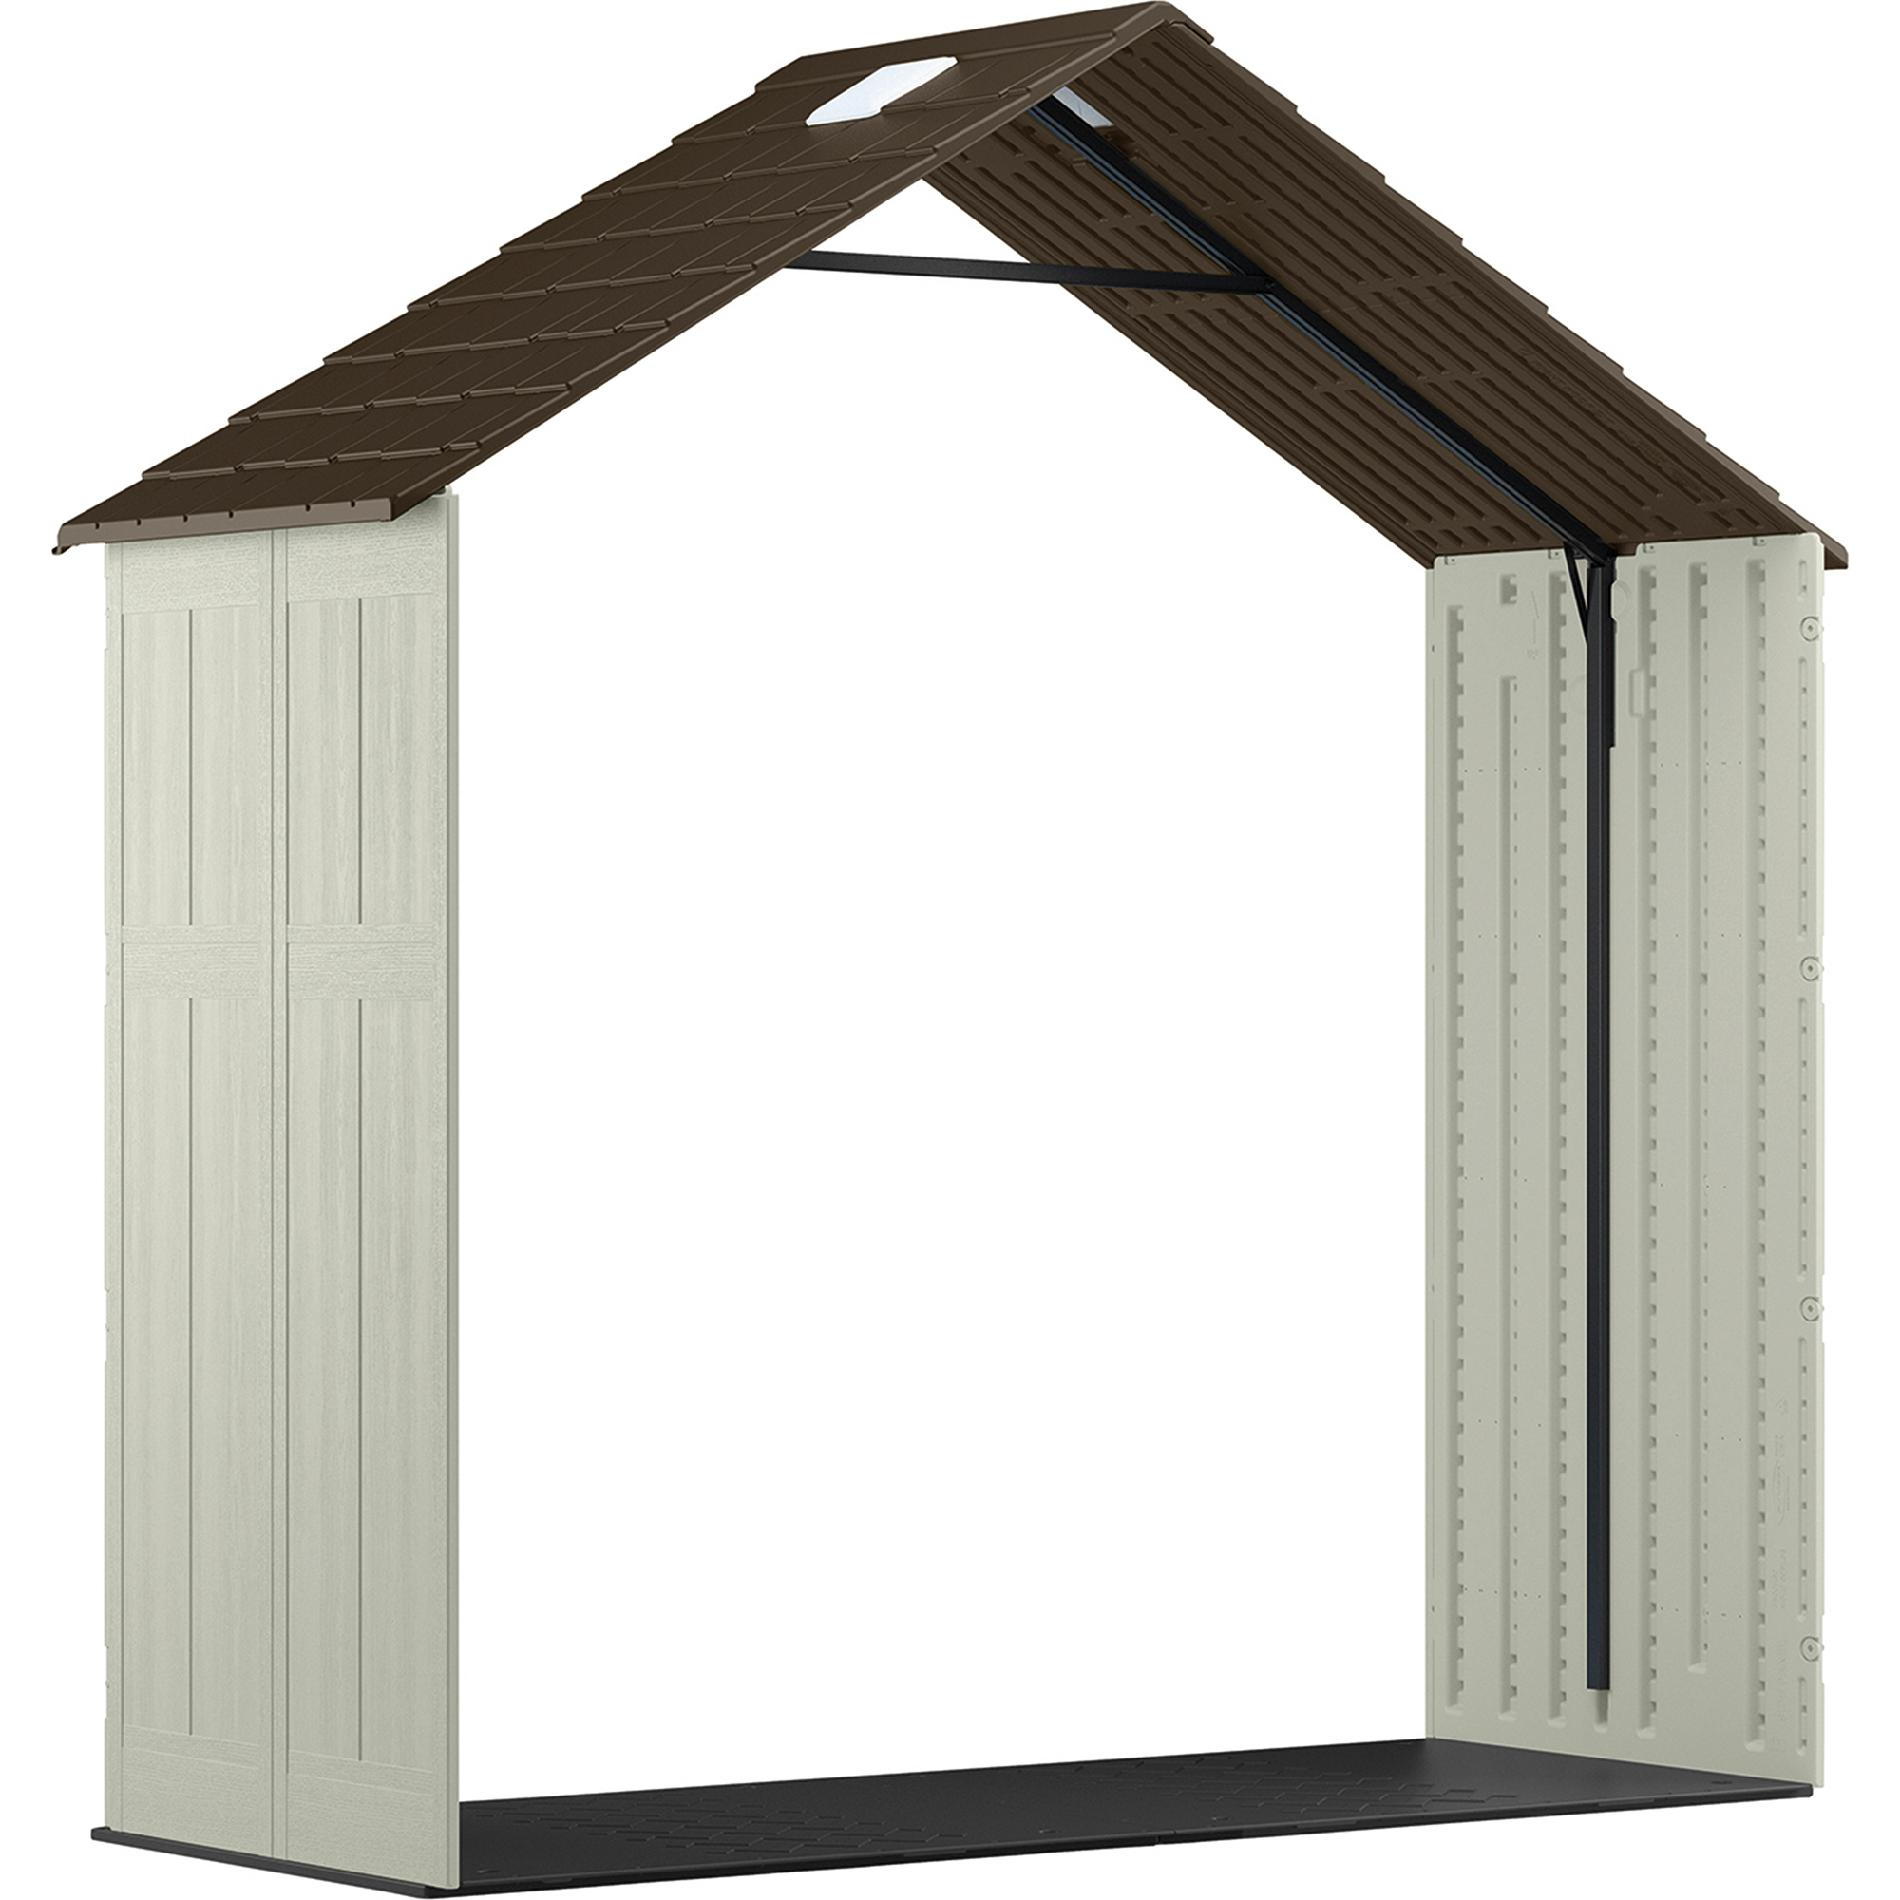 Garden Sheds 10 X 3 $299.99 / sears - craftsman 3-ft. shed extension kit for 65007 8x7